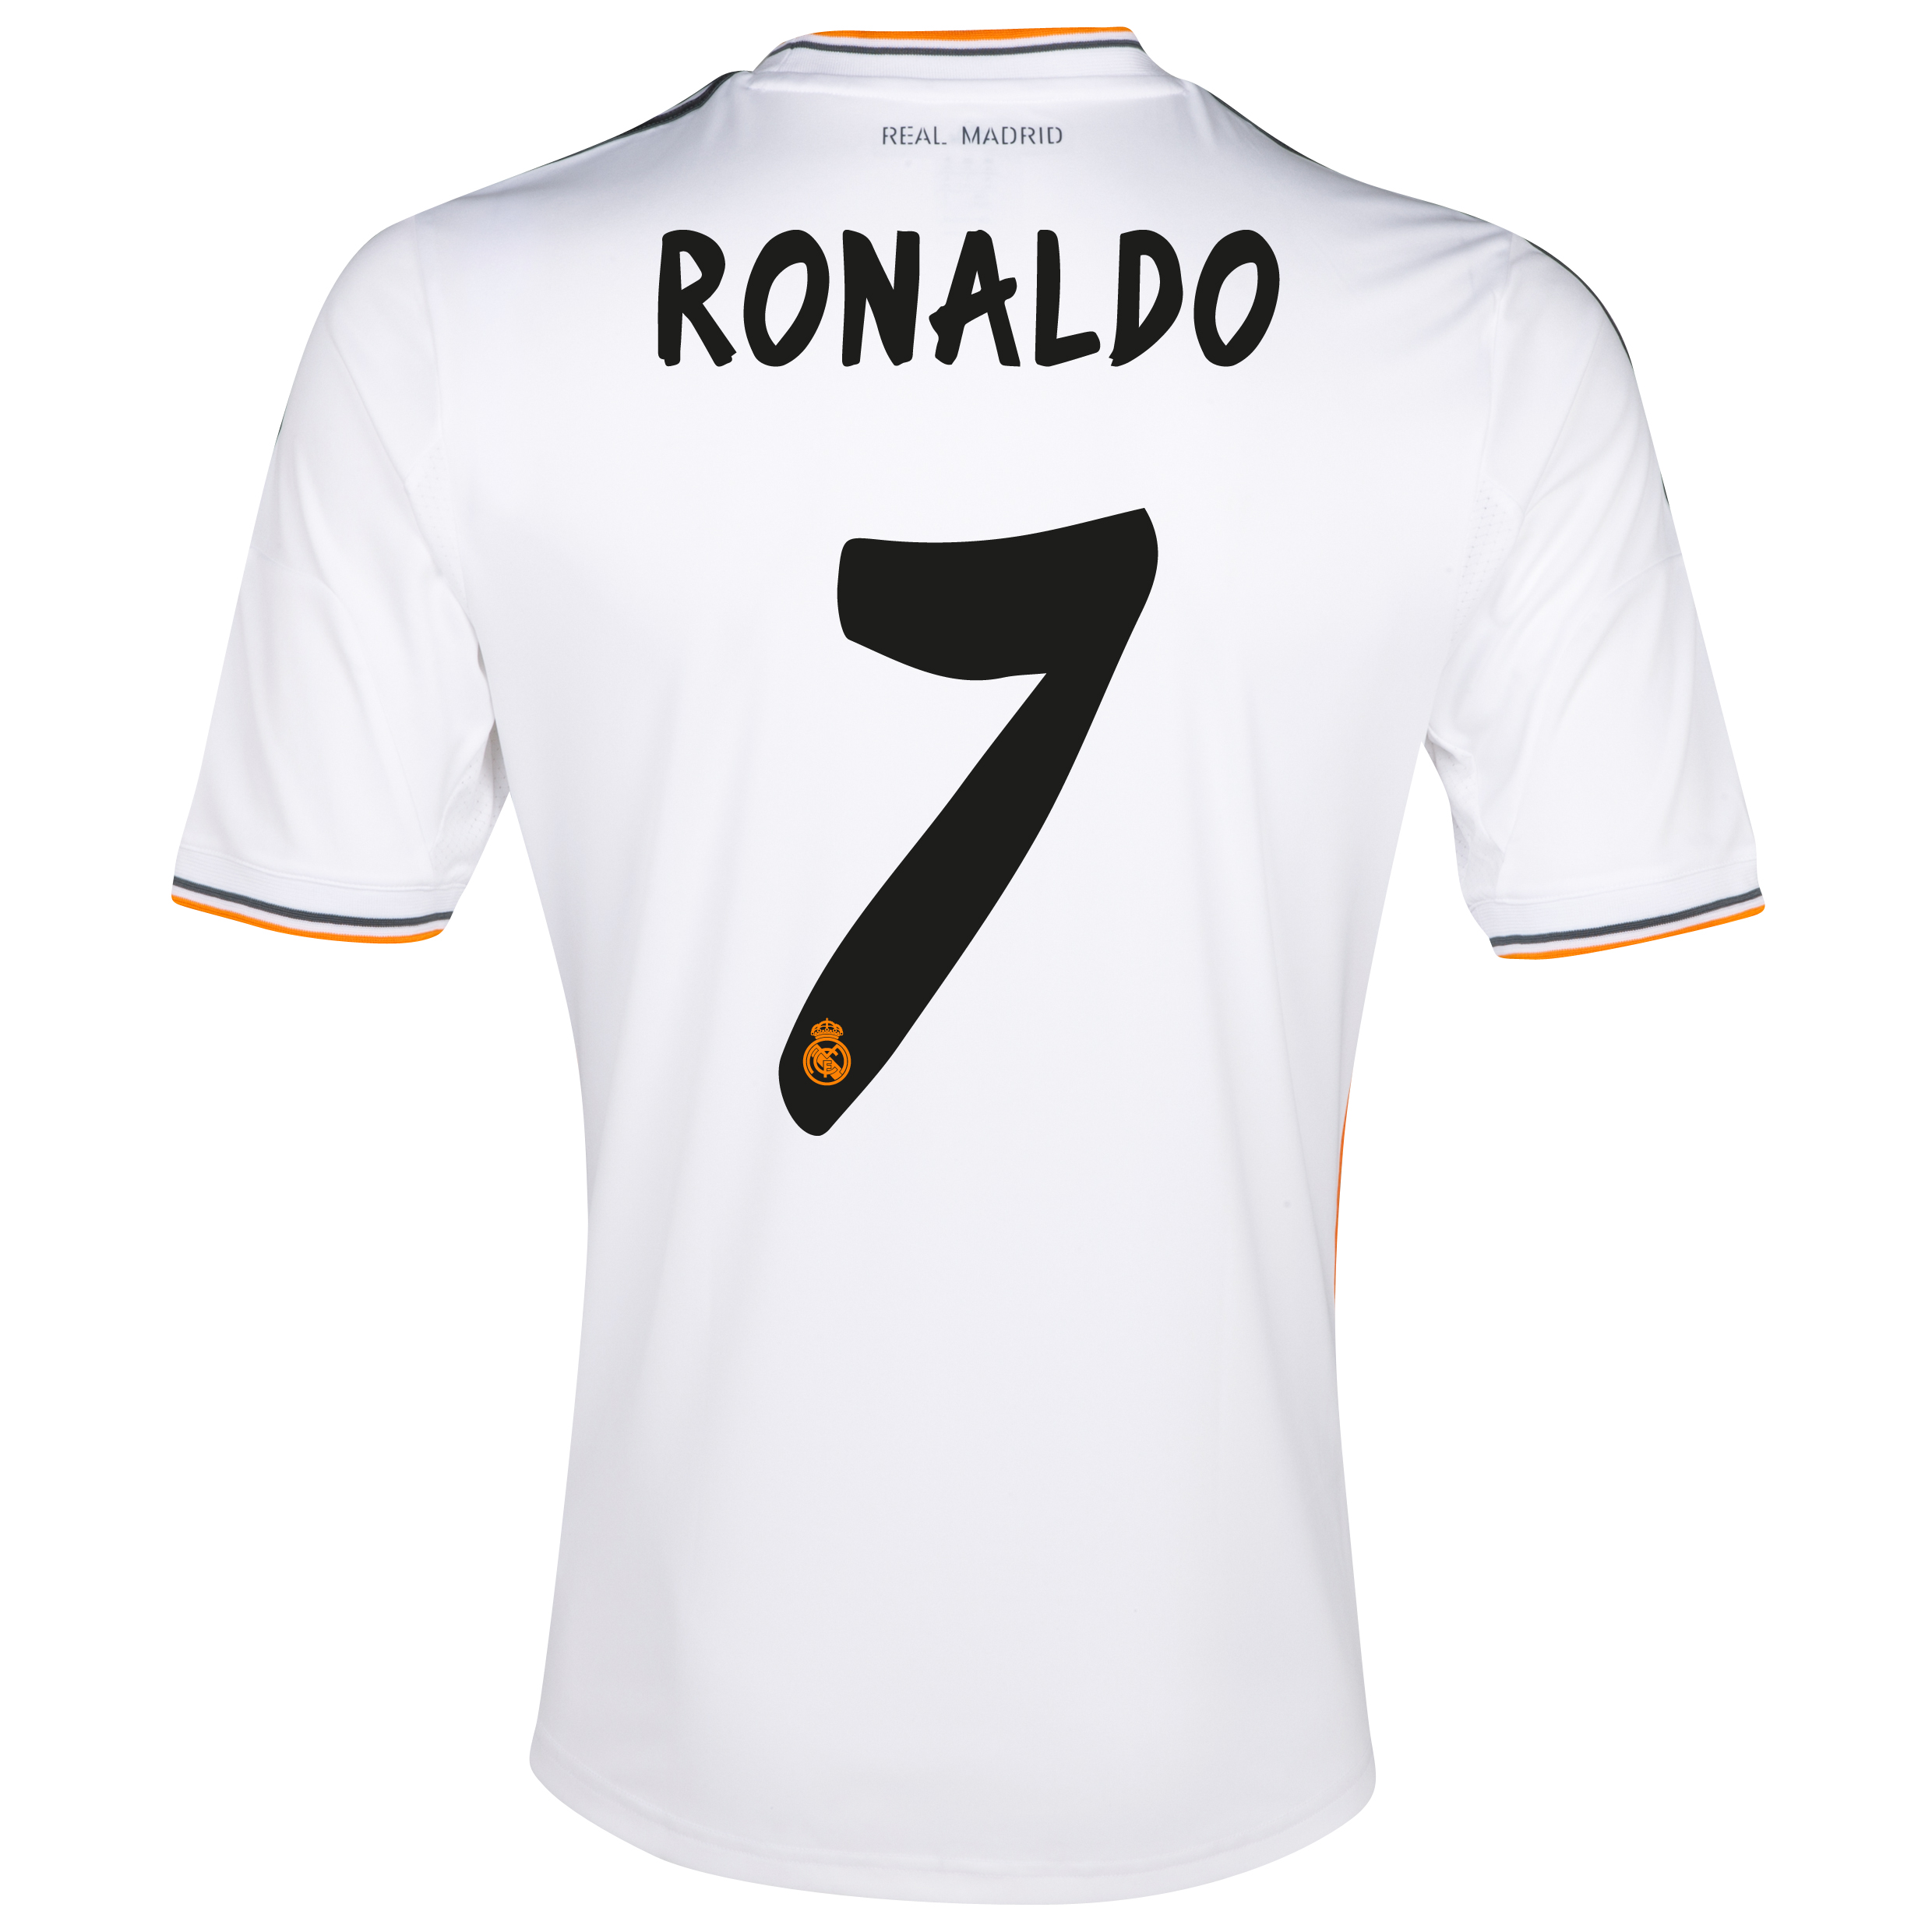 Real Madrid Home Shirt 2013/14 with Ronaldo 7 printing